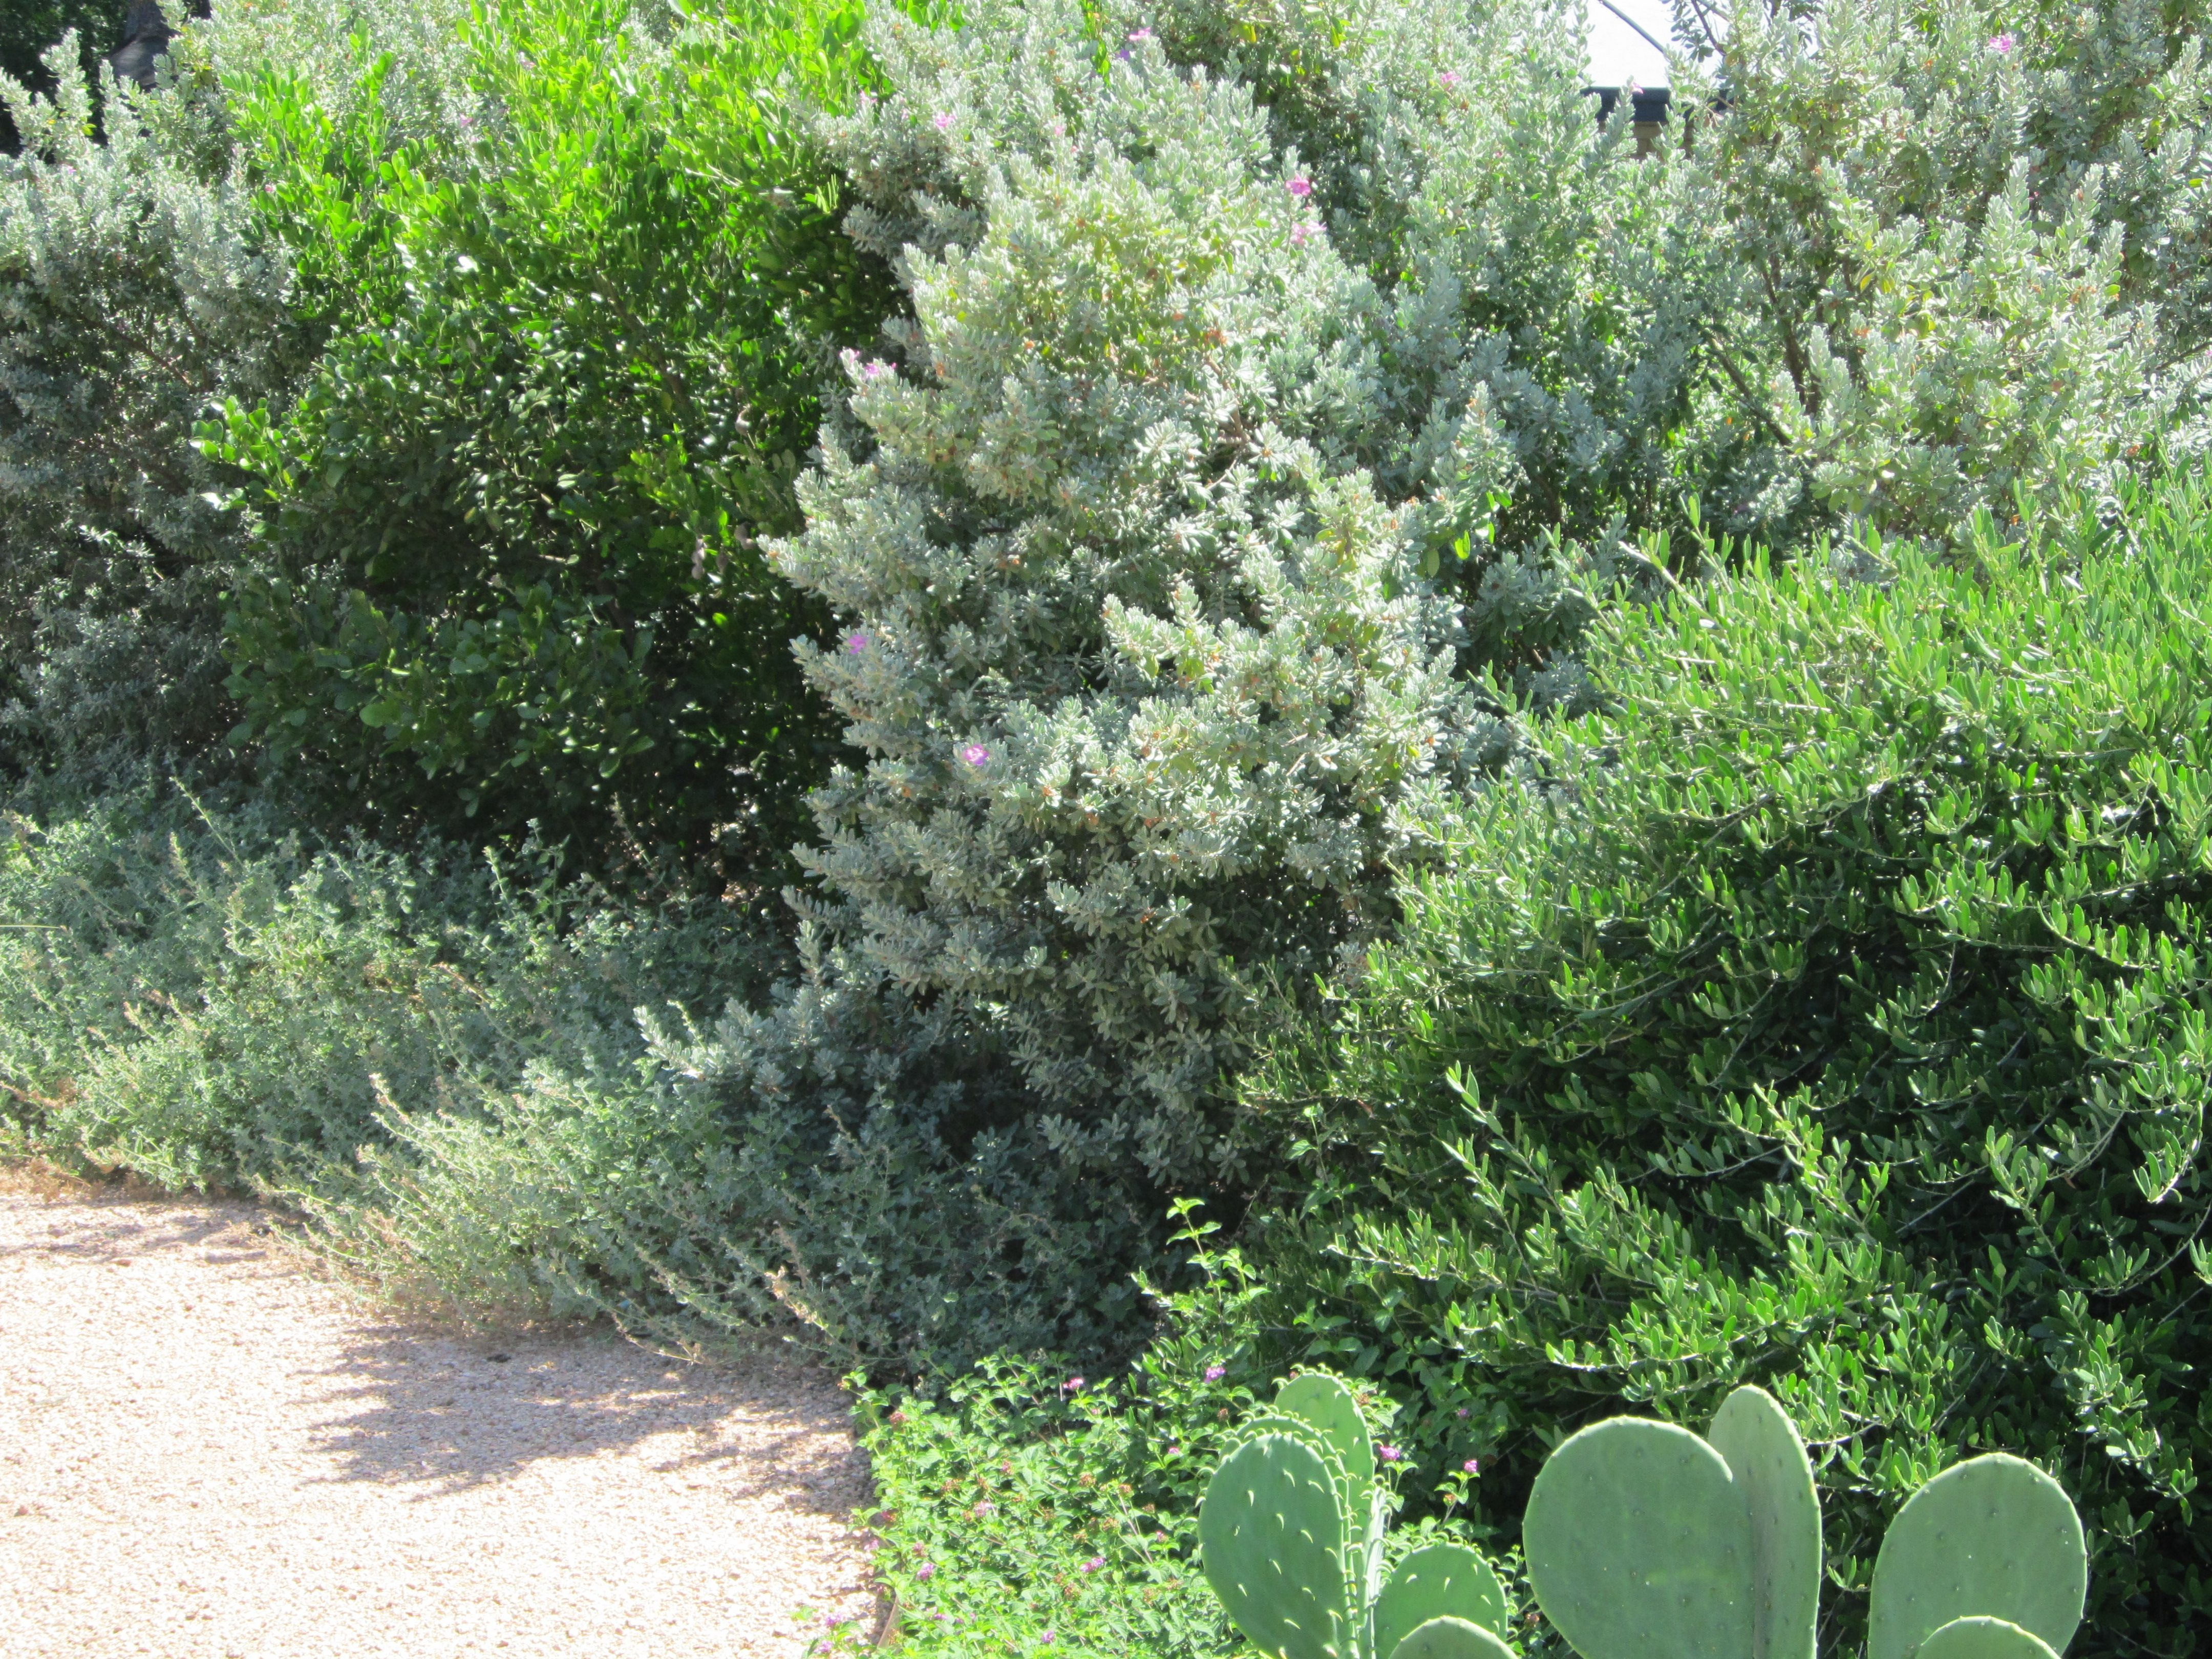 Mixed screen of native Cenizo, Texas Mountain Laurel, and 'Little Ollie' Olive Bush.